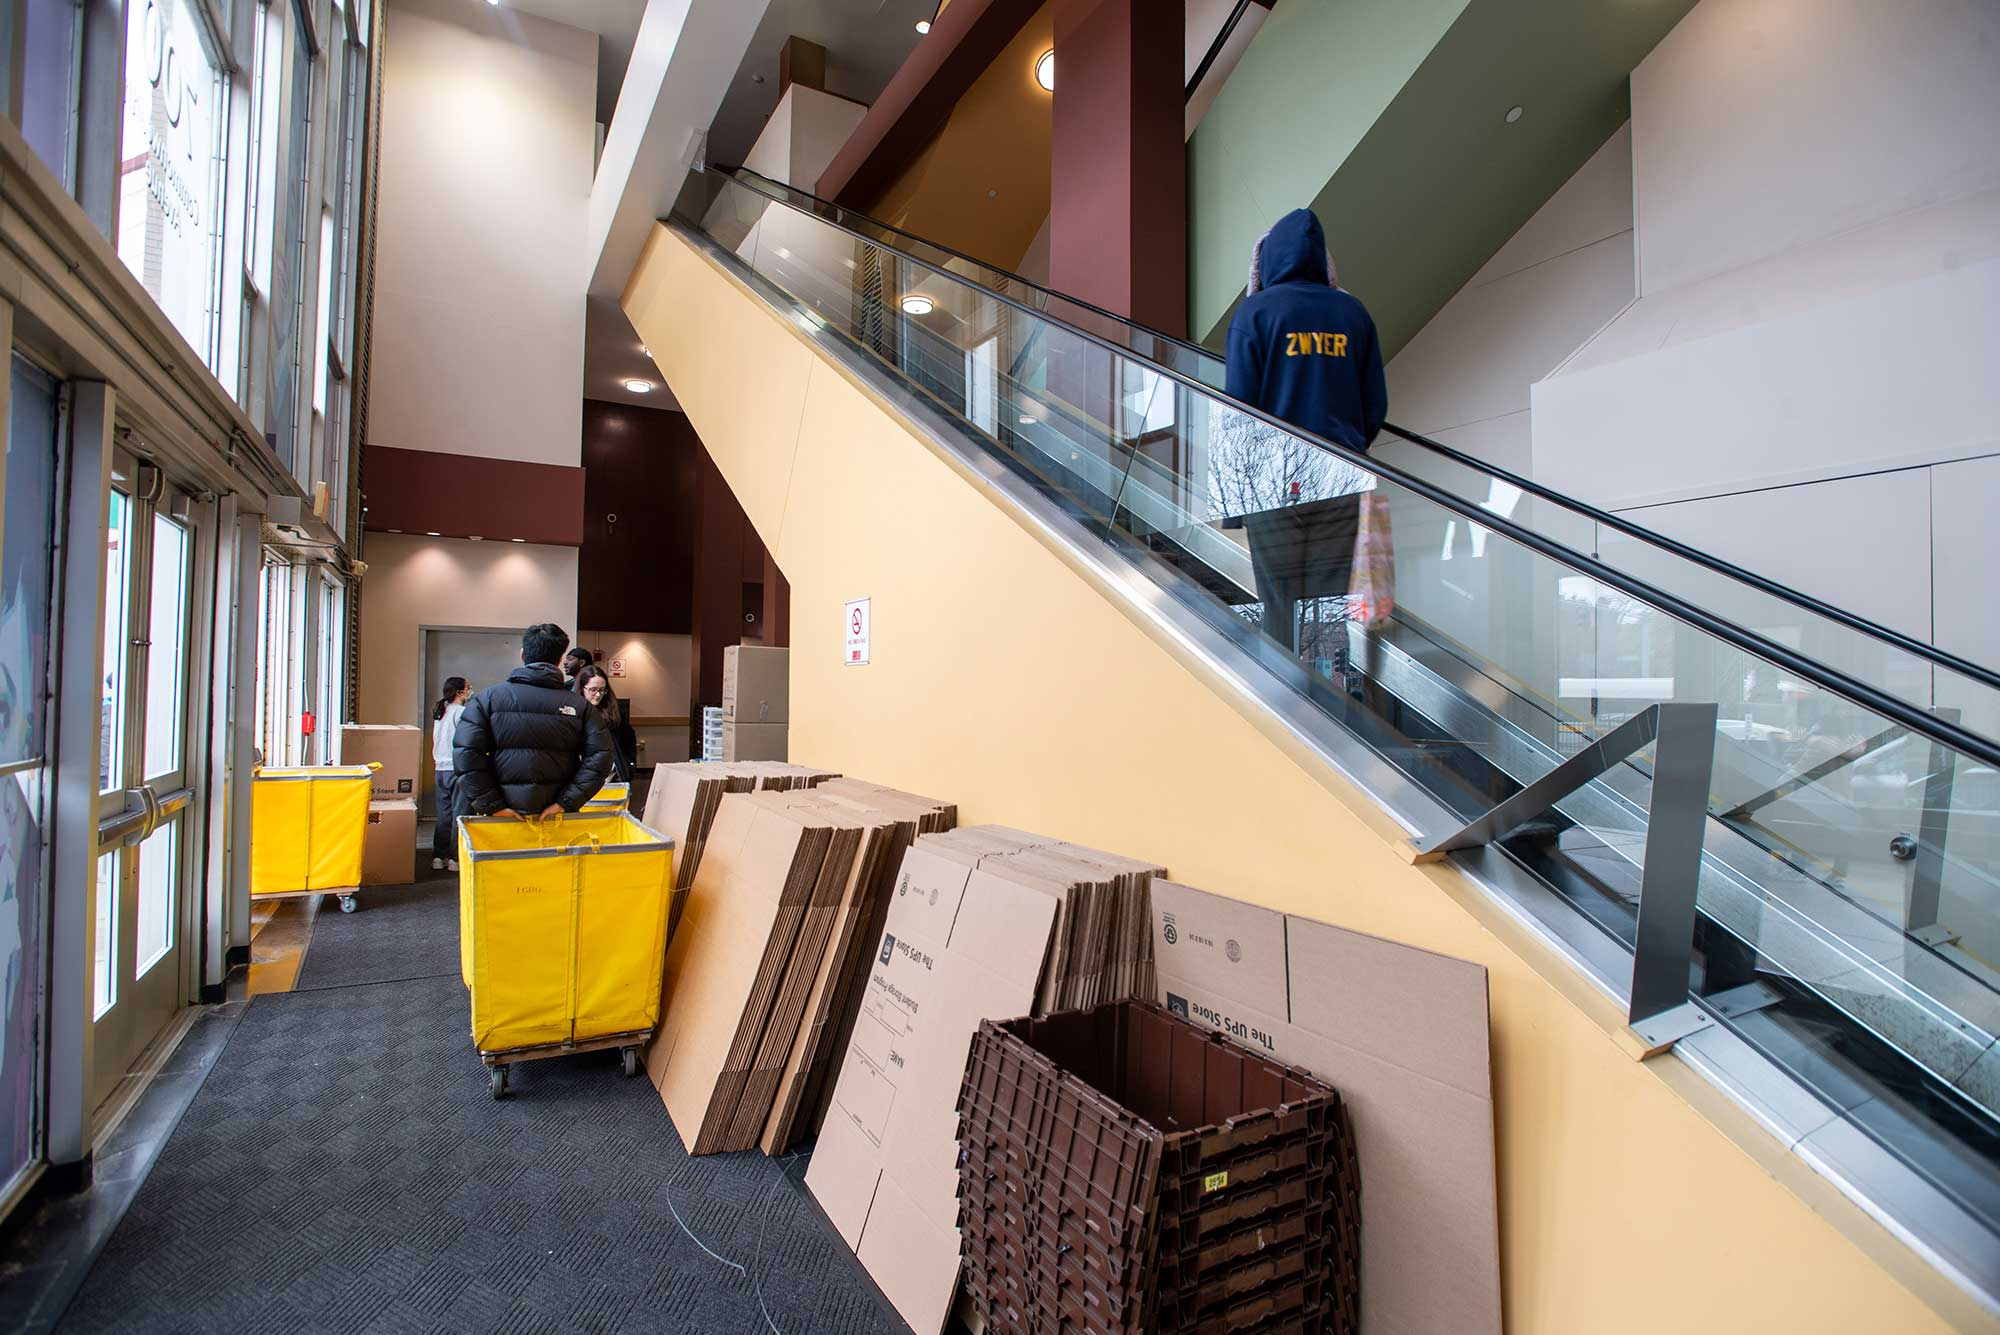 Lobby of Warren Towers during student move out